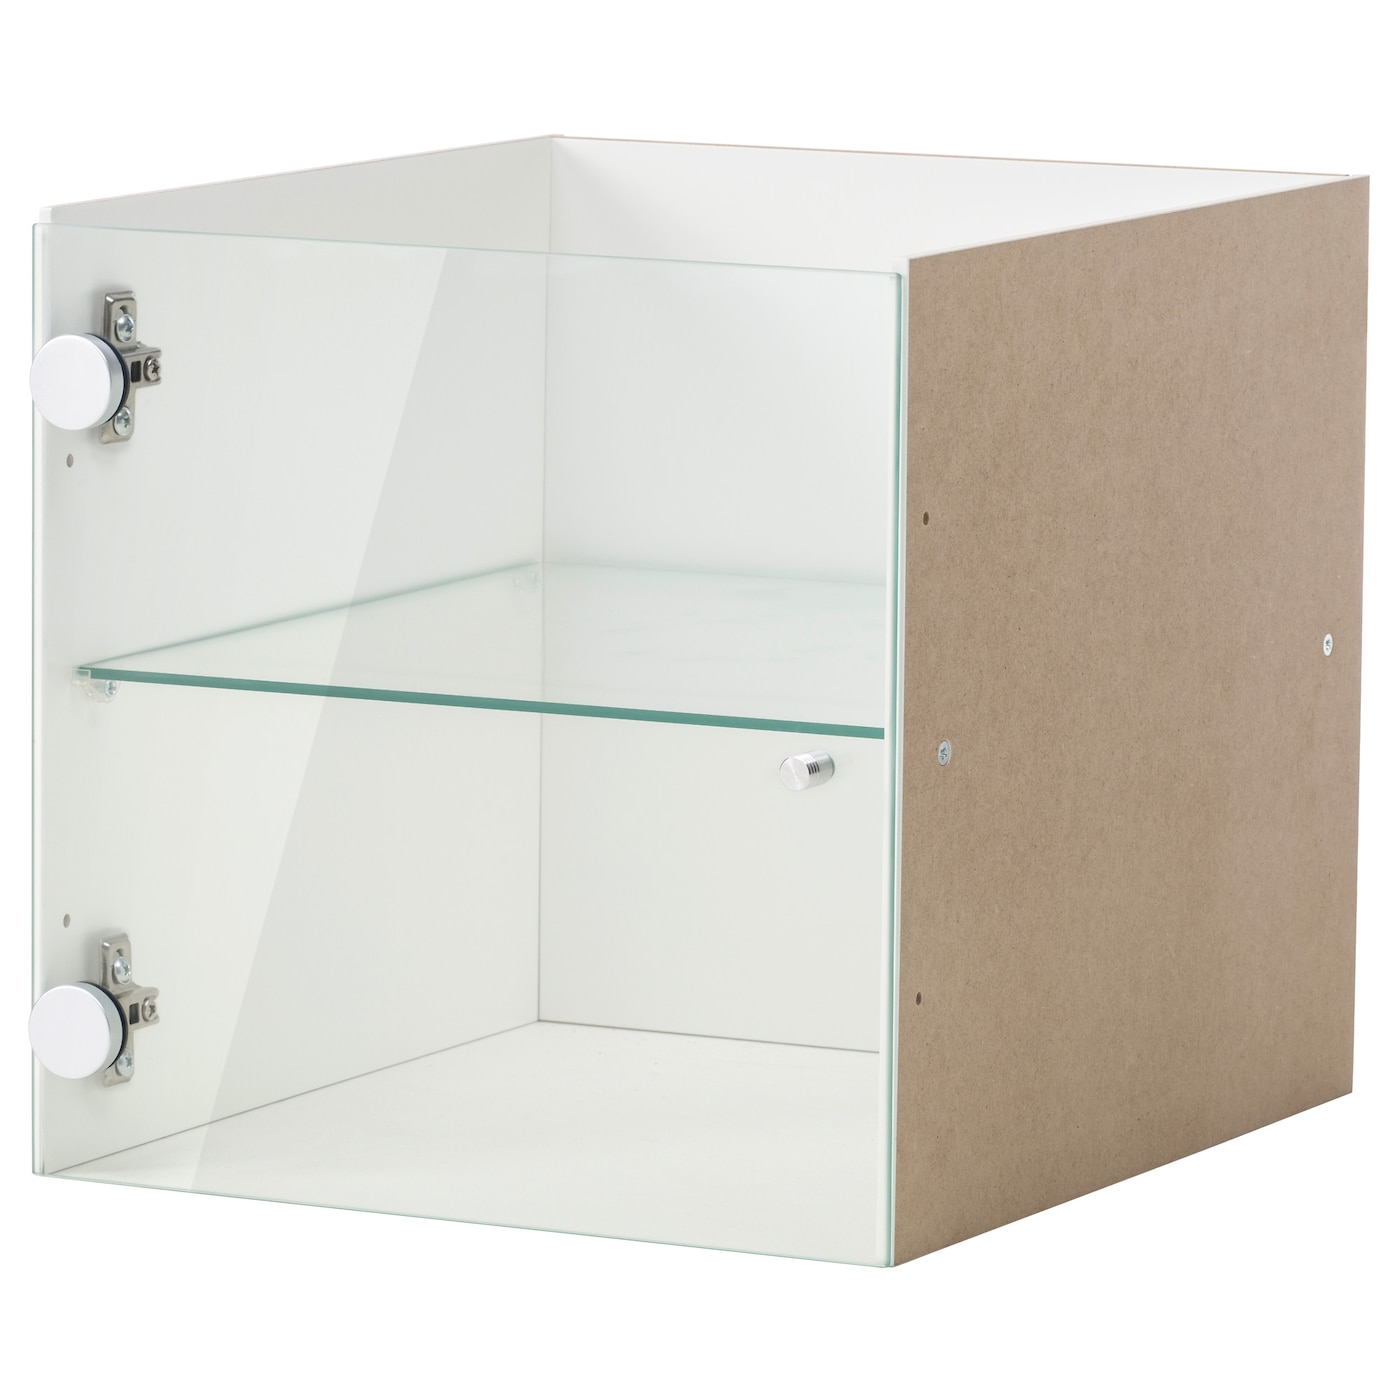 IKEA KALLAX insert with glass door Easy to assemble.